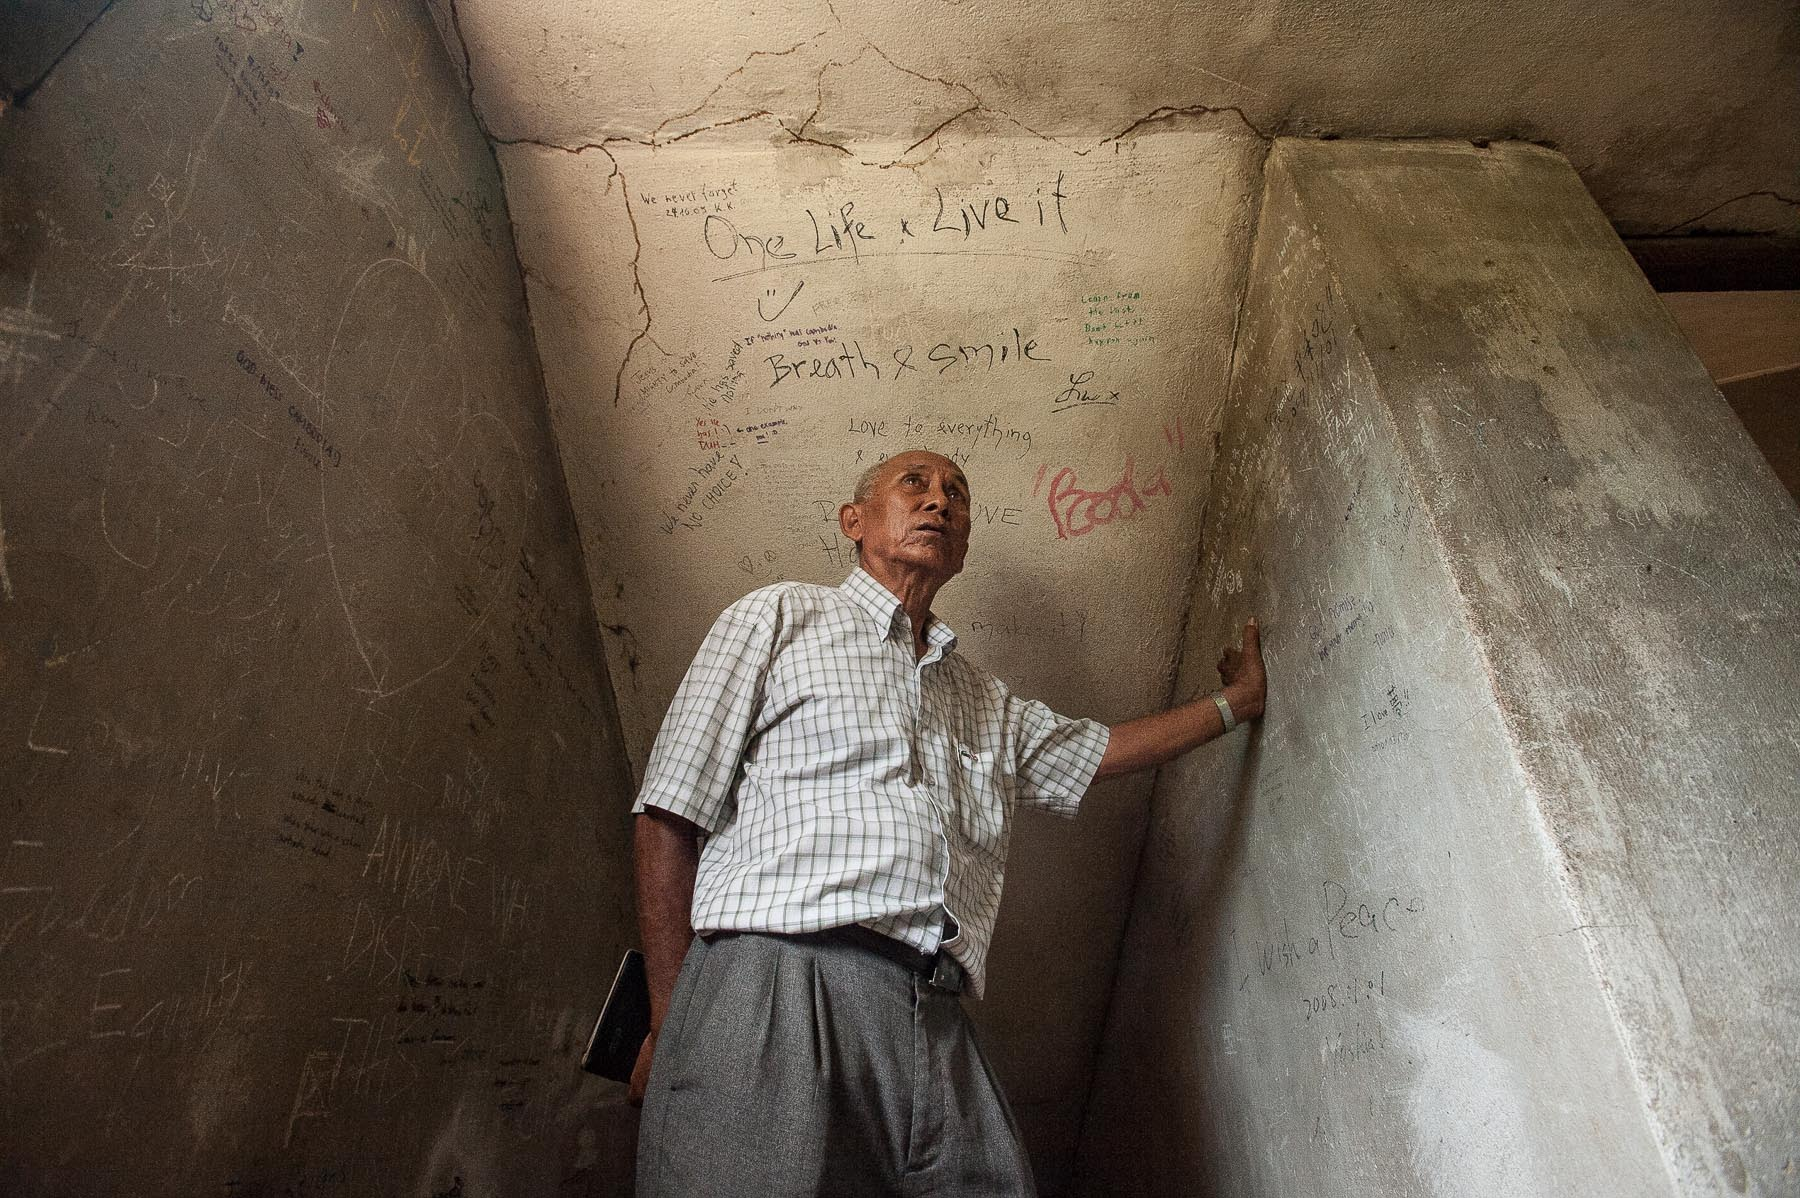 Khmer Rouge survivor, Chum Mey inside the Toul Sleng prison in Phnom Penh, Cambodia.